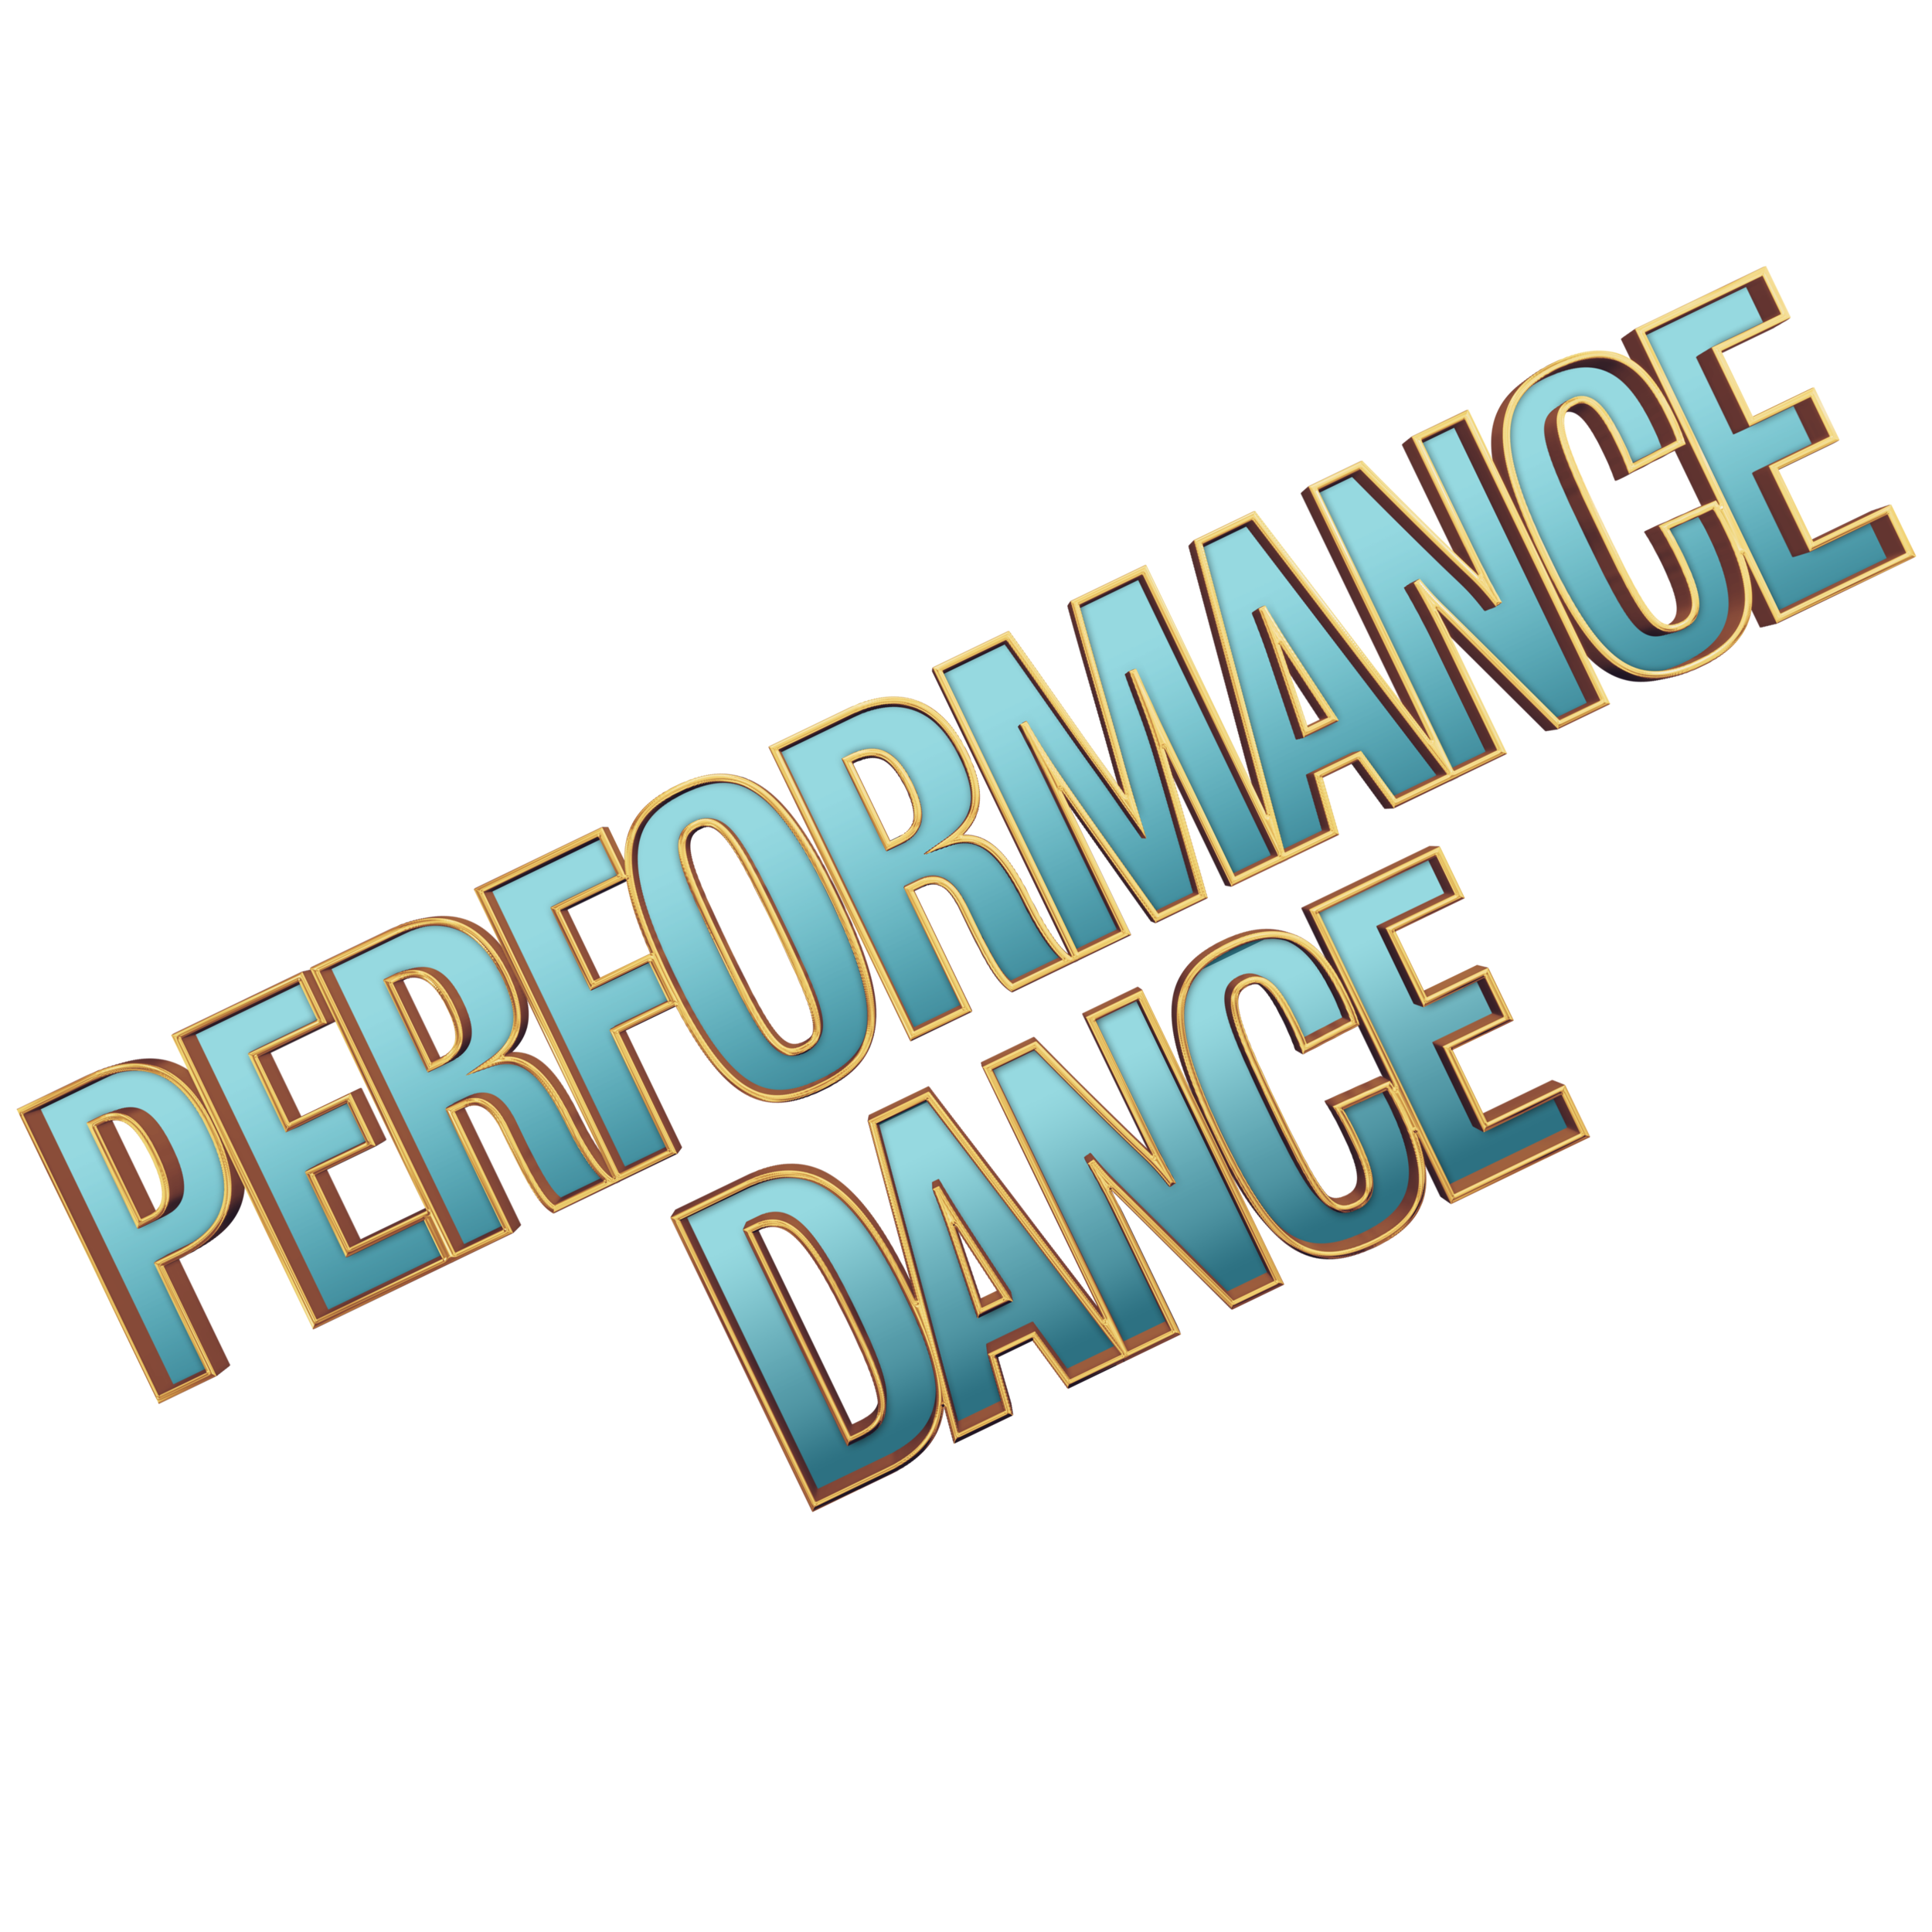 Performance Dance diag.png